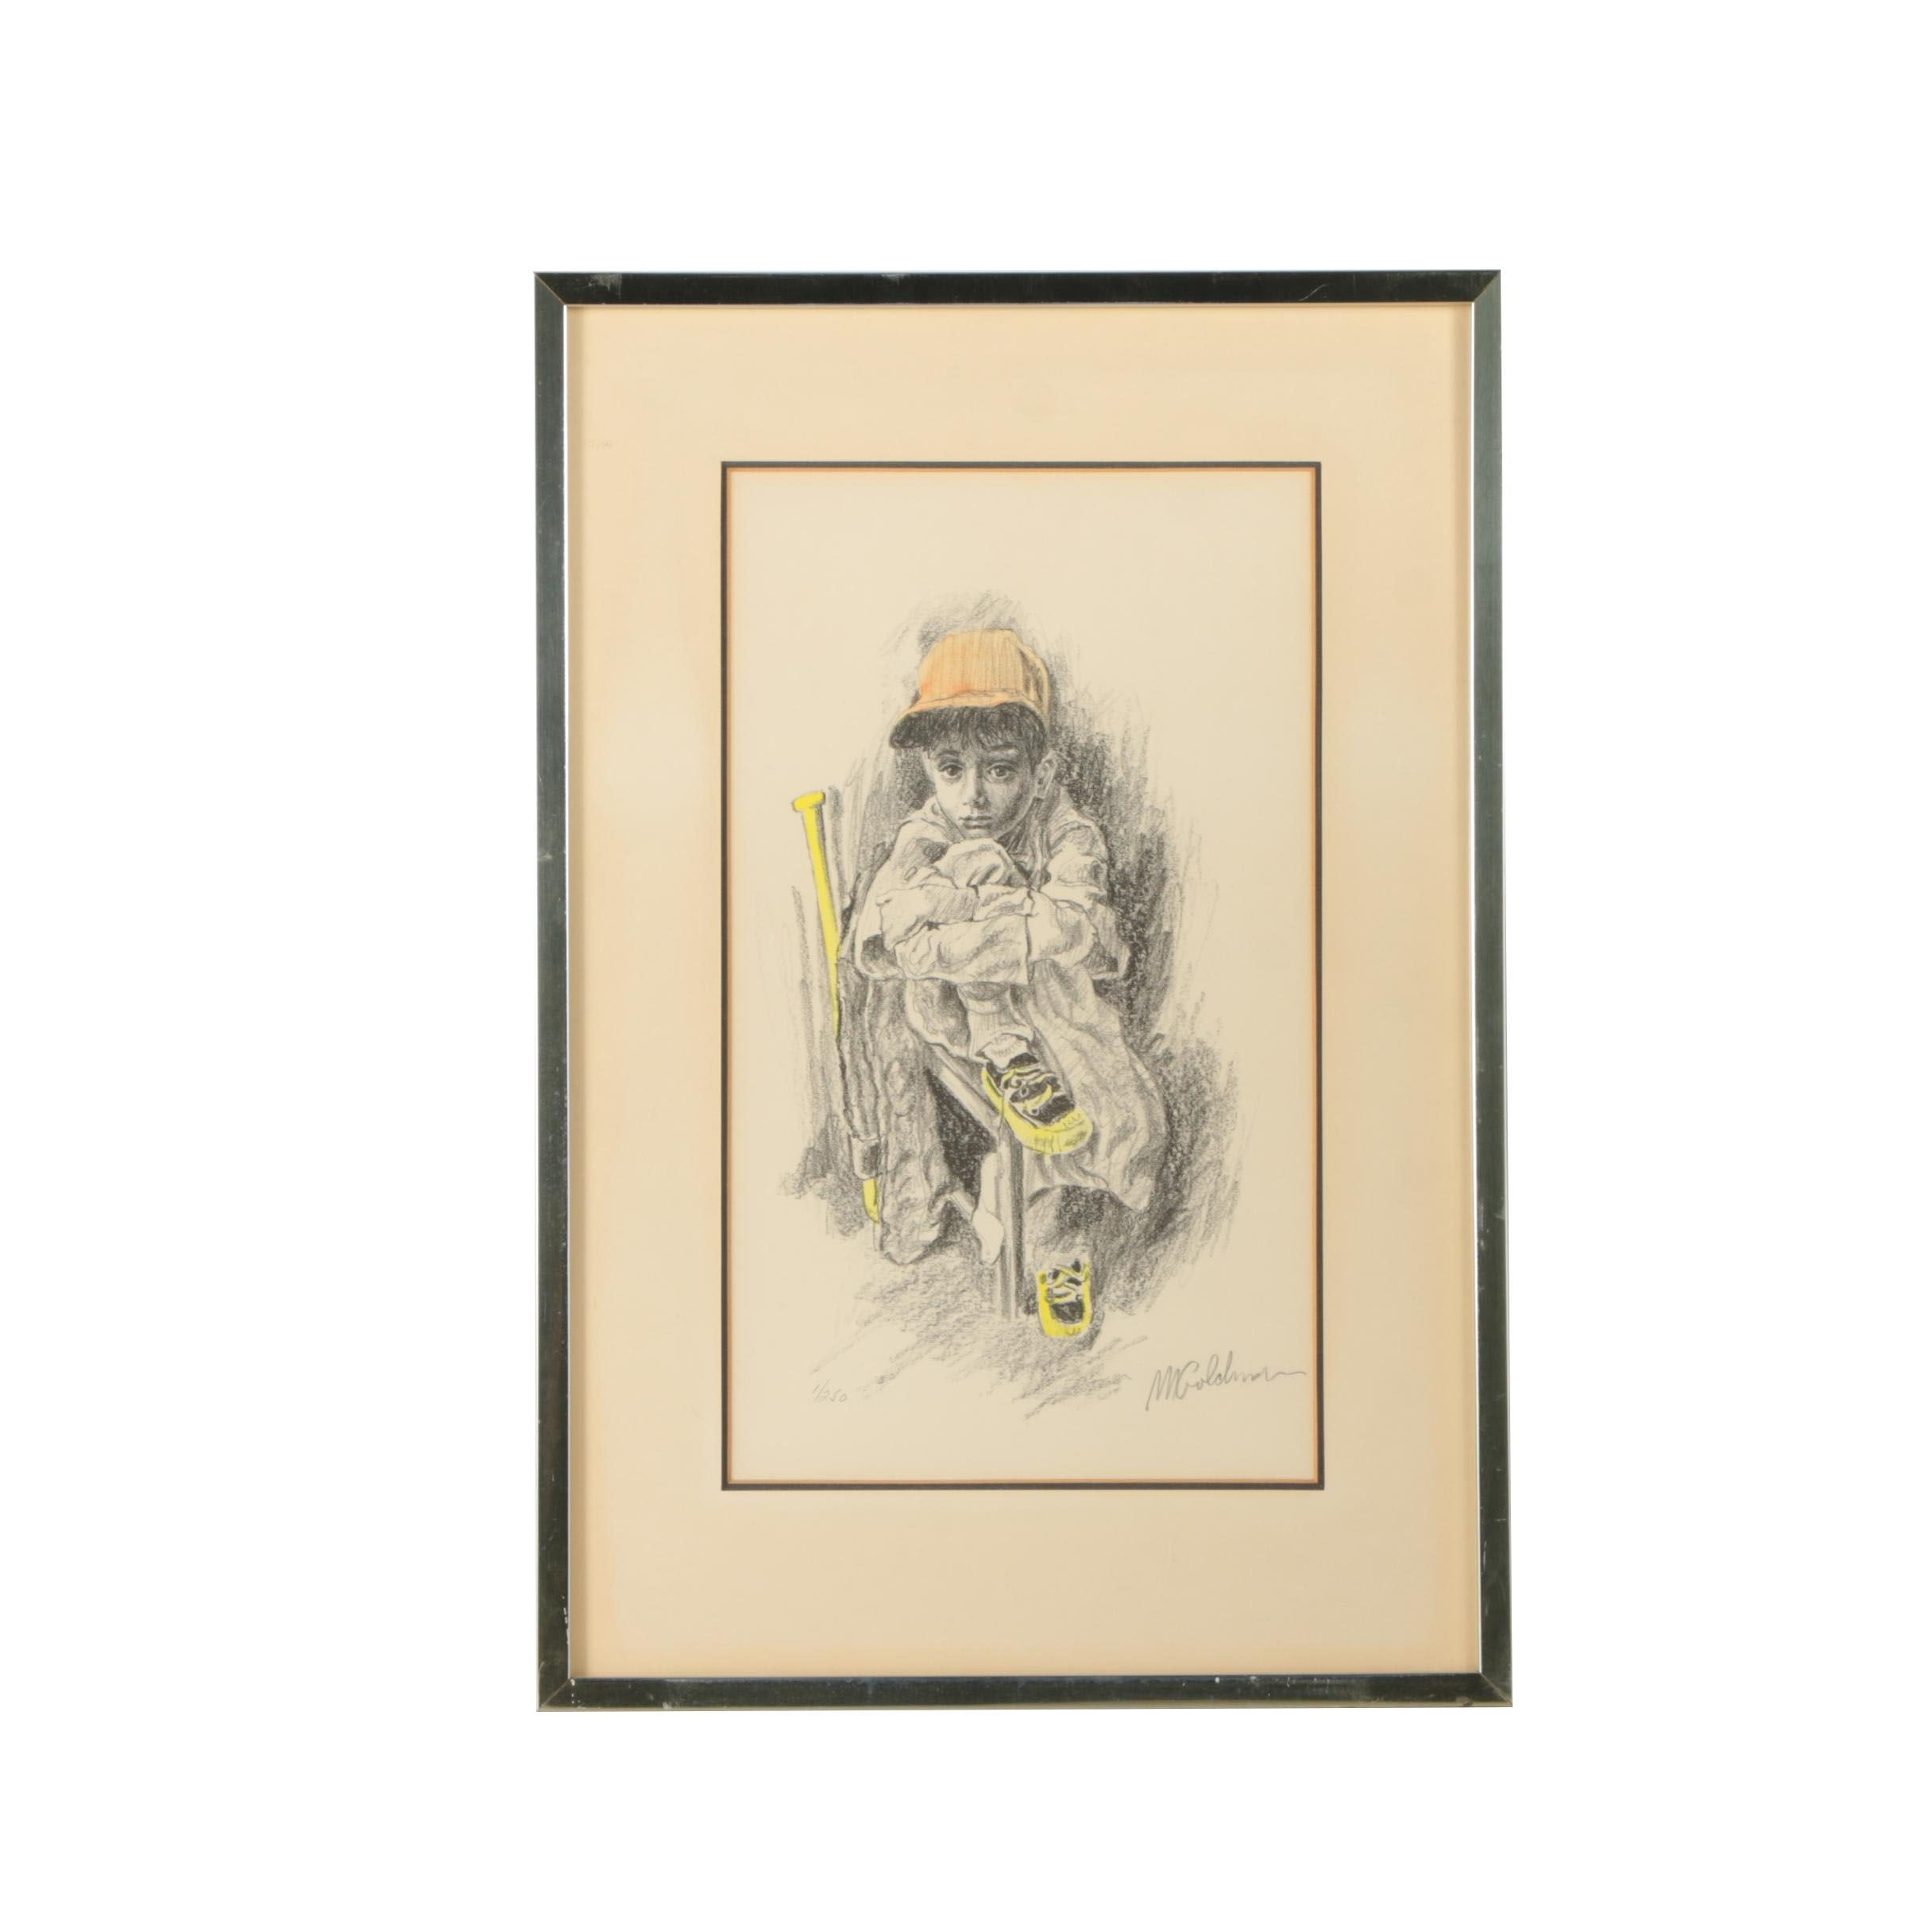 M. Goldman Limited Edition Hand Colored Lithograph of Boy with Baseball Bat